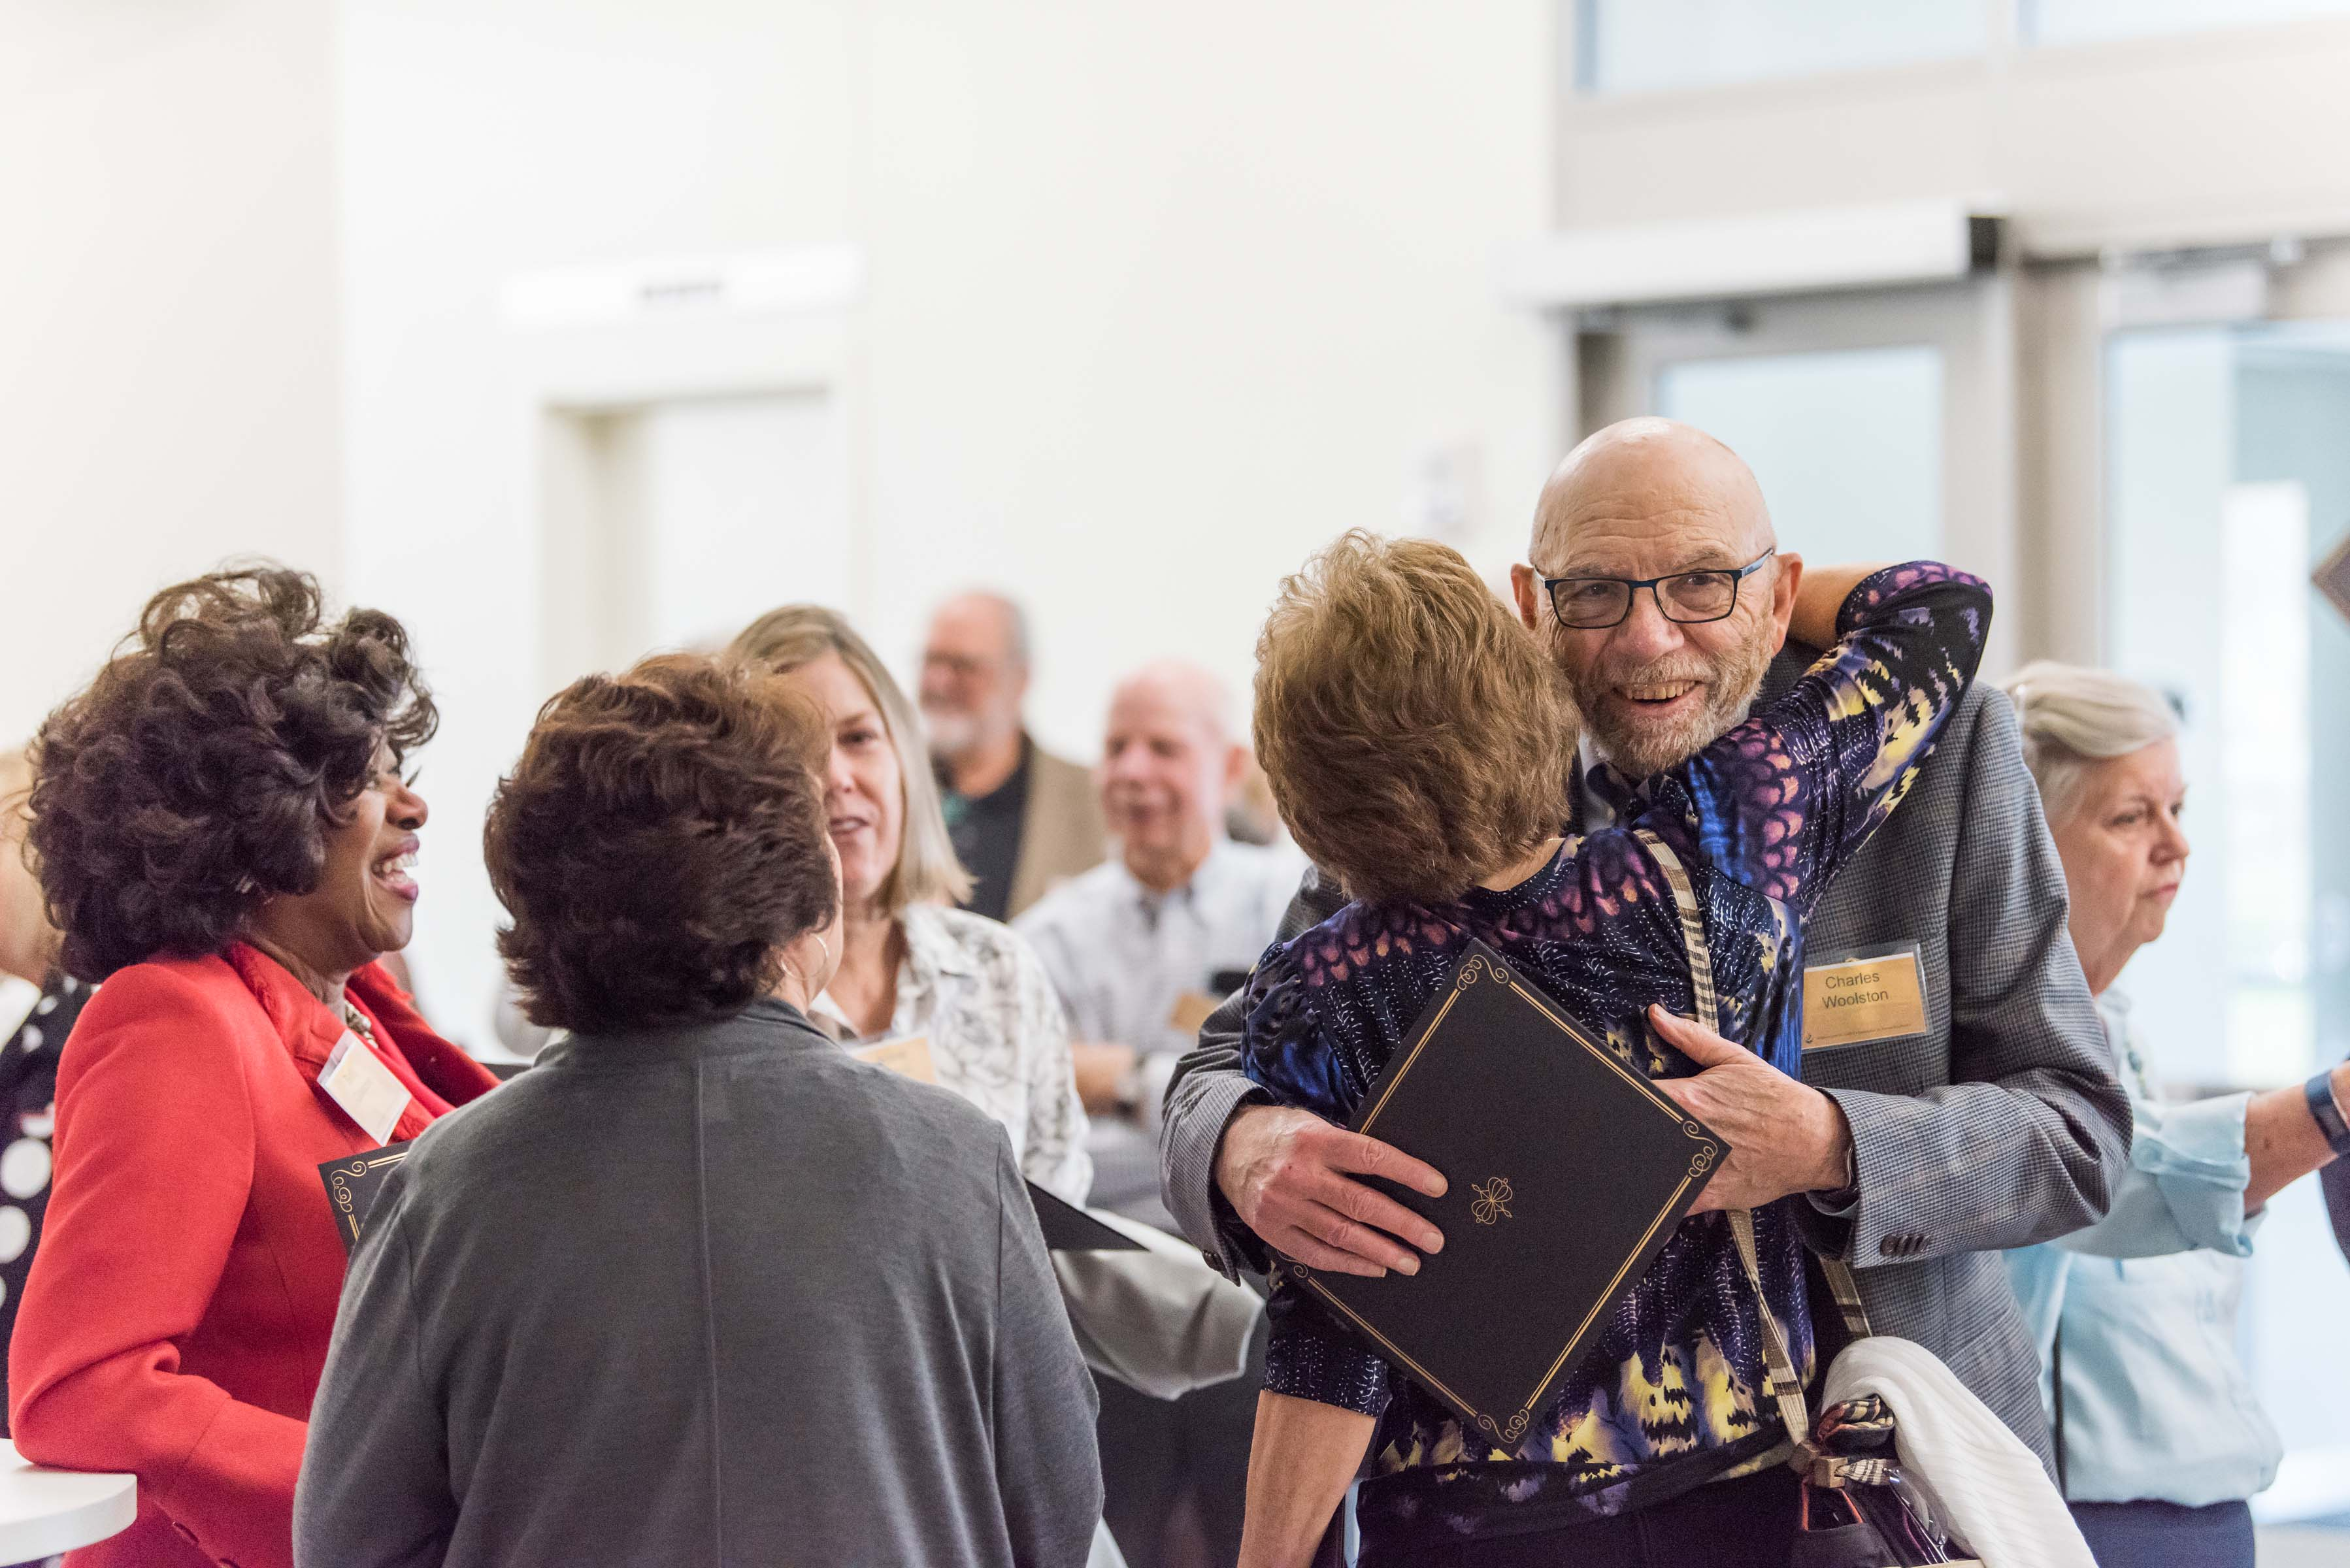 People hug at Wisdom Institute lunch